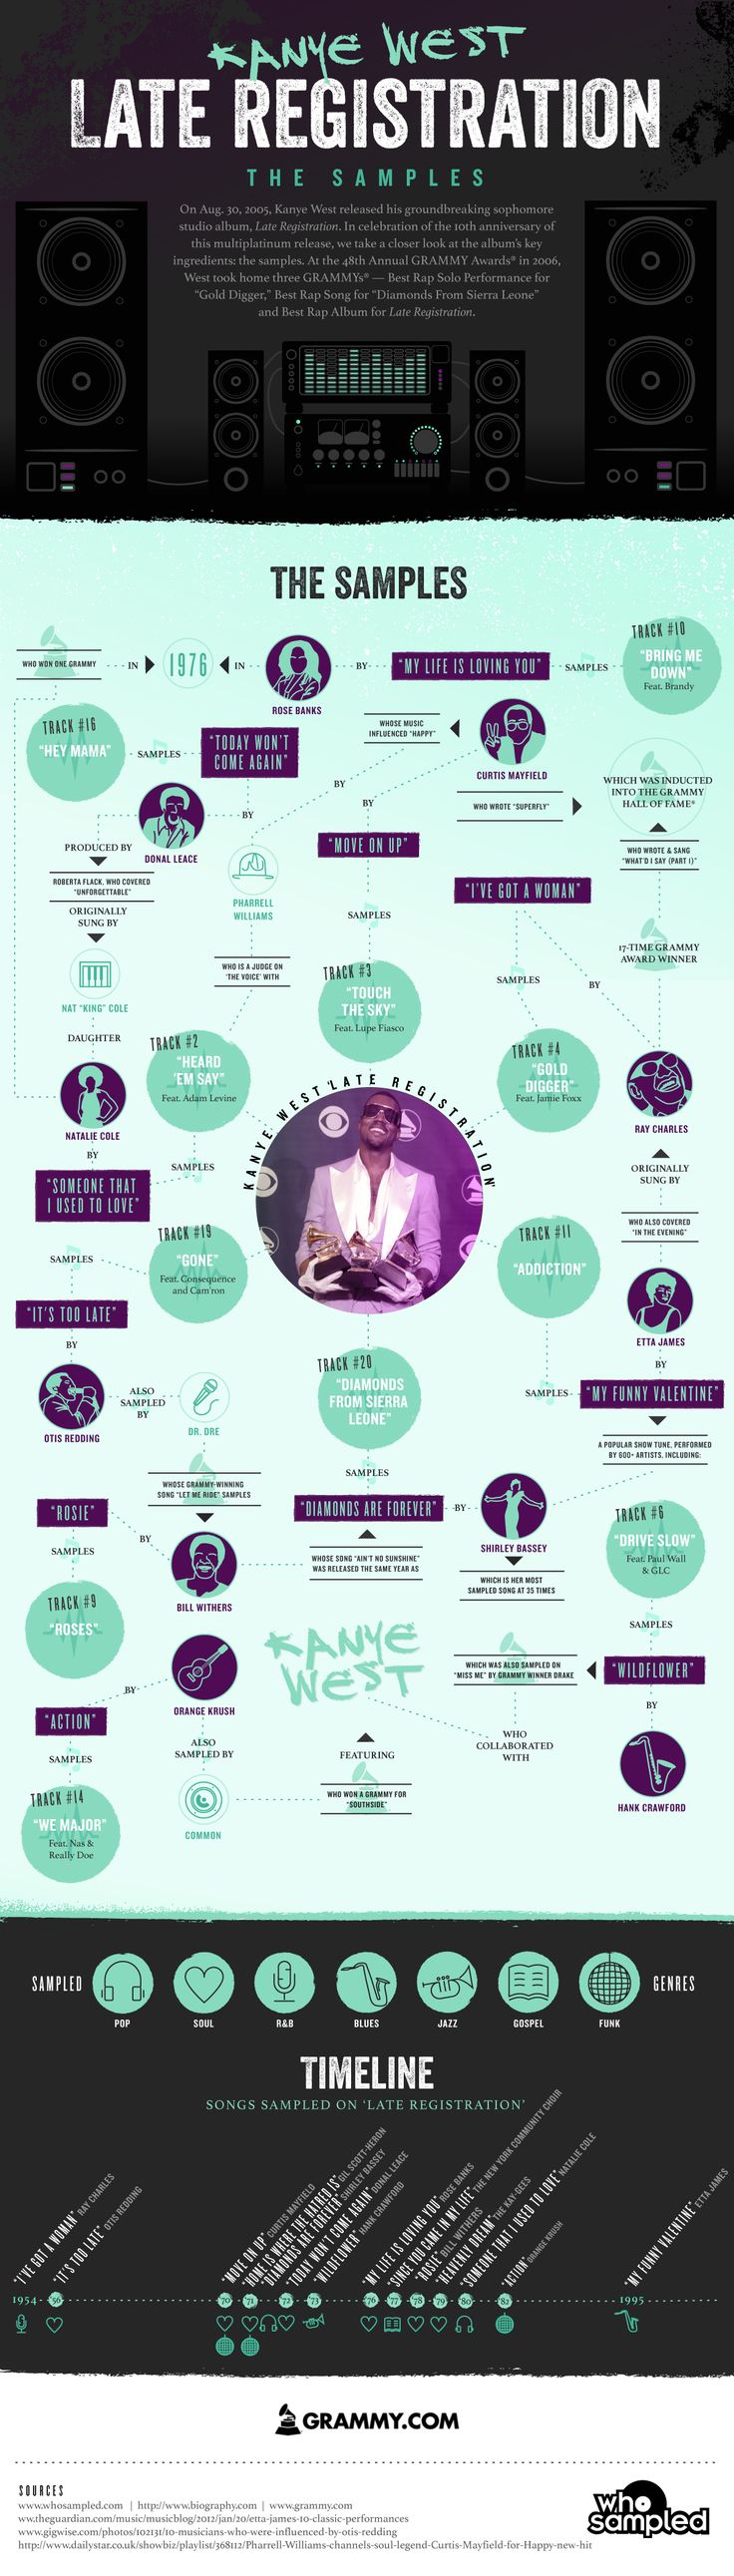 Infographic of the samples in 'Late Registration' by Kanye West, presented by The GRAMMYs and WhoSampled.